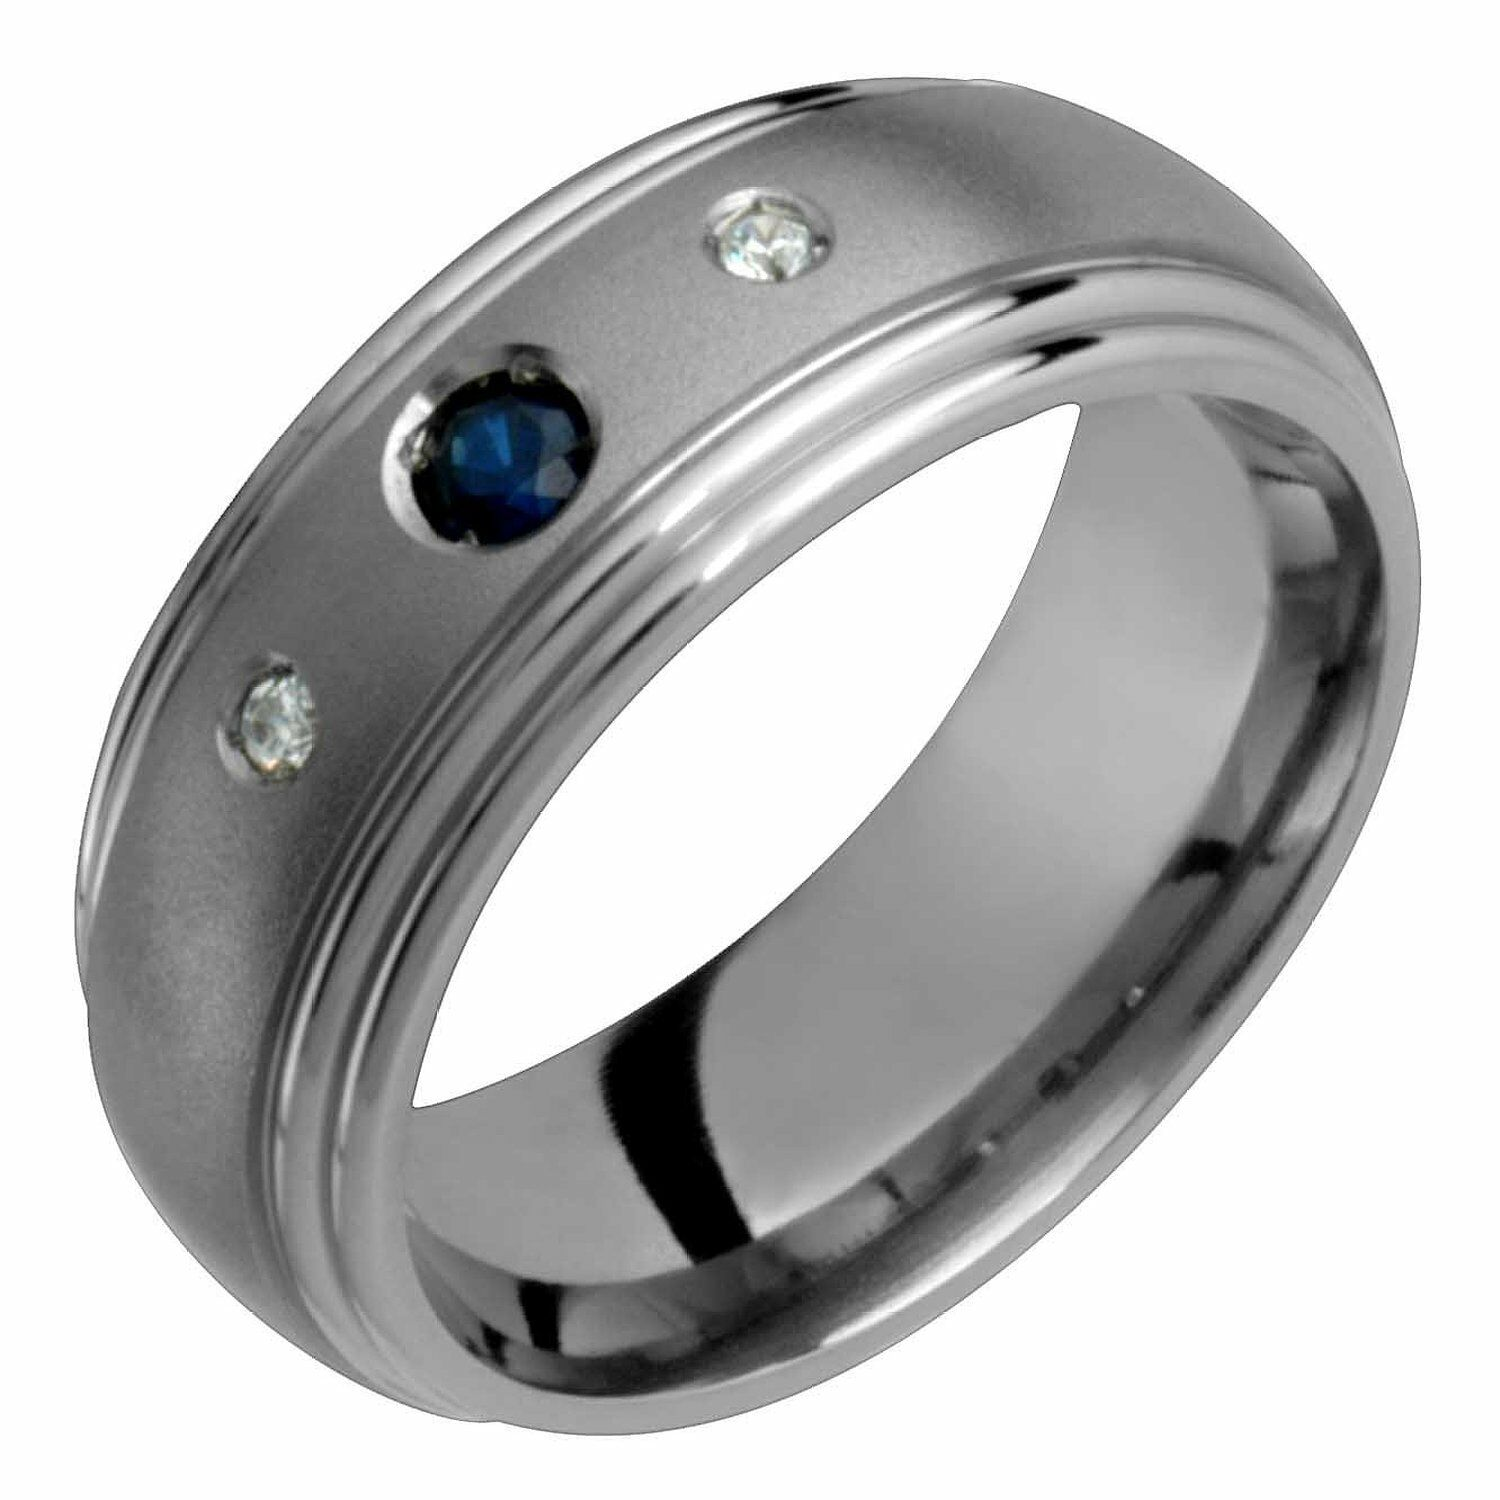 Men Diamonds N Sapphire W Titanium Ringfort Fit Wedding Band For Him N  Her